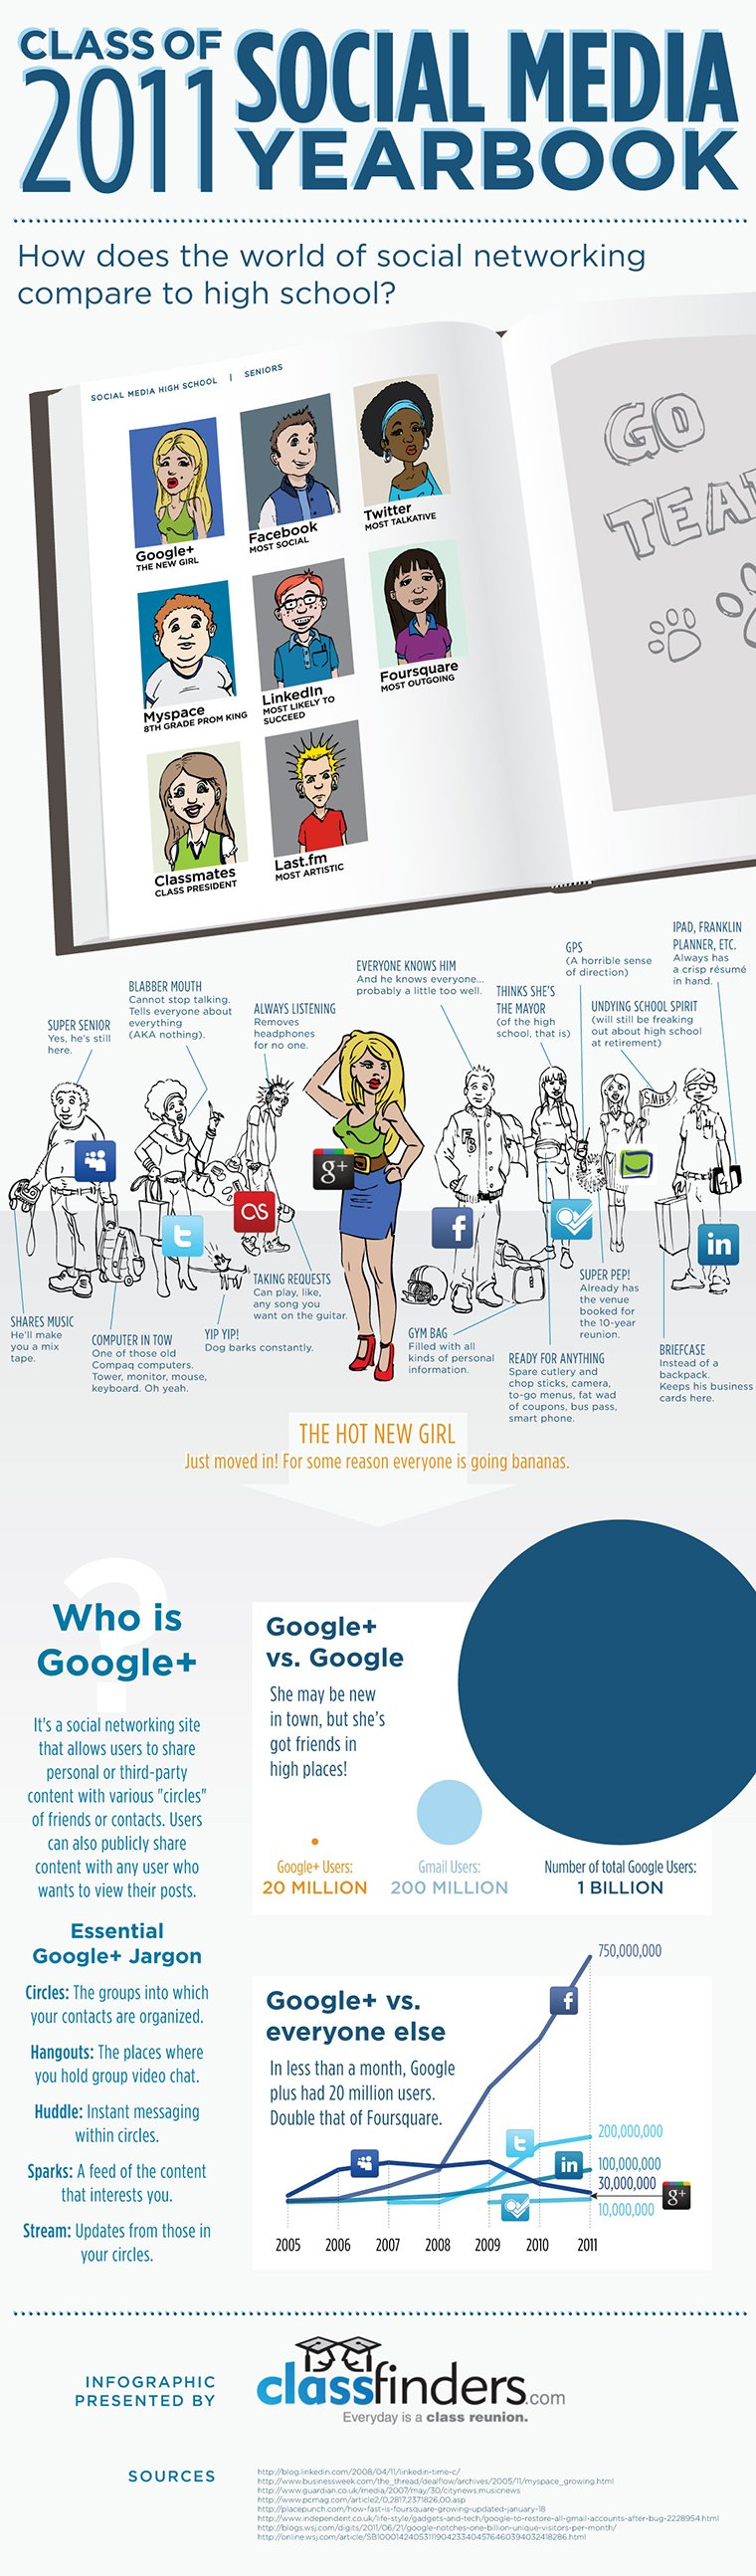 social media class 2011 infographic